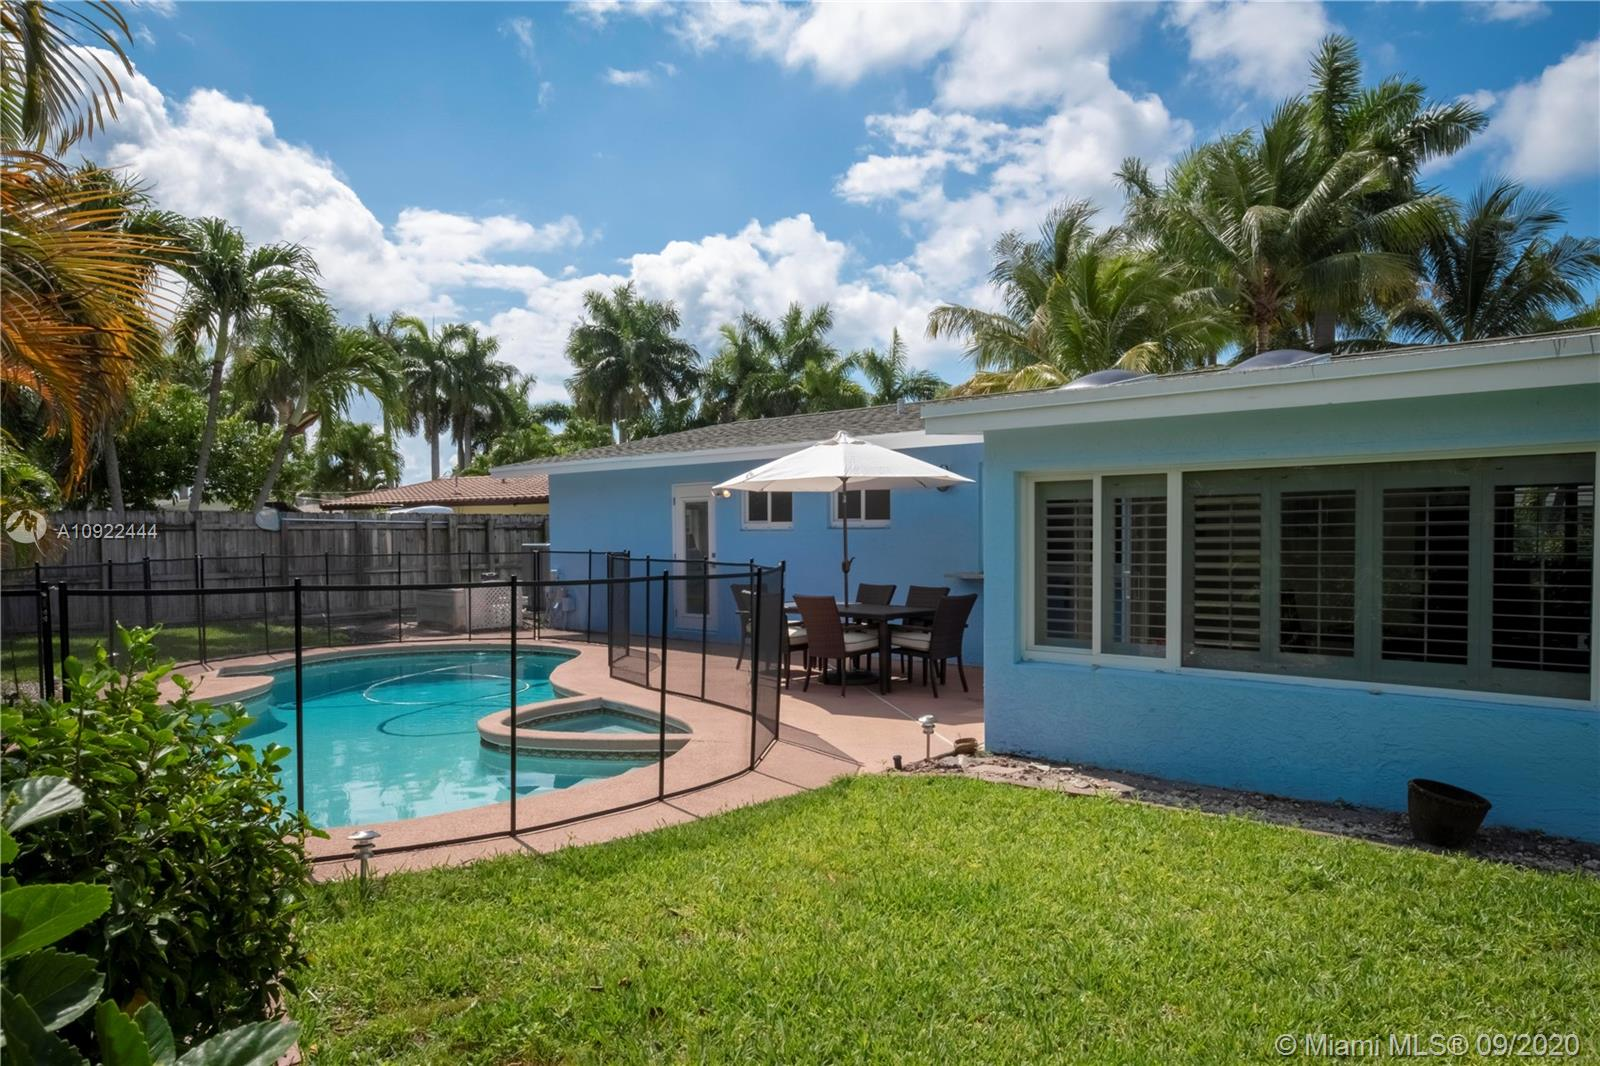 Welcome home! This beautiful pool home has everything you could want and more! Plenty of space to entertain both inside and out. The back patio and pool is setup like a tropical oasis with mature coconut palms giving off coconuts regularly! This meticulously maintained home was recently renovated and is ready for you to move in! The home can be sold furnished or unfurnished. Literally all you need is your toothbrush.  Set up your private showing today!